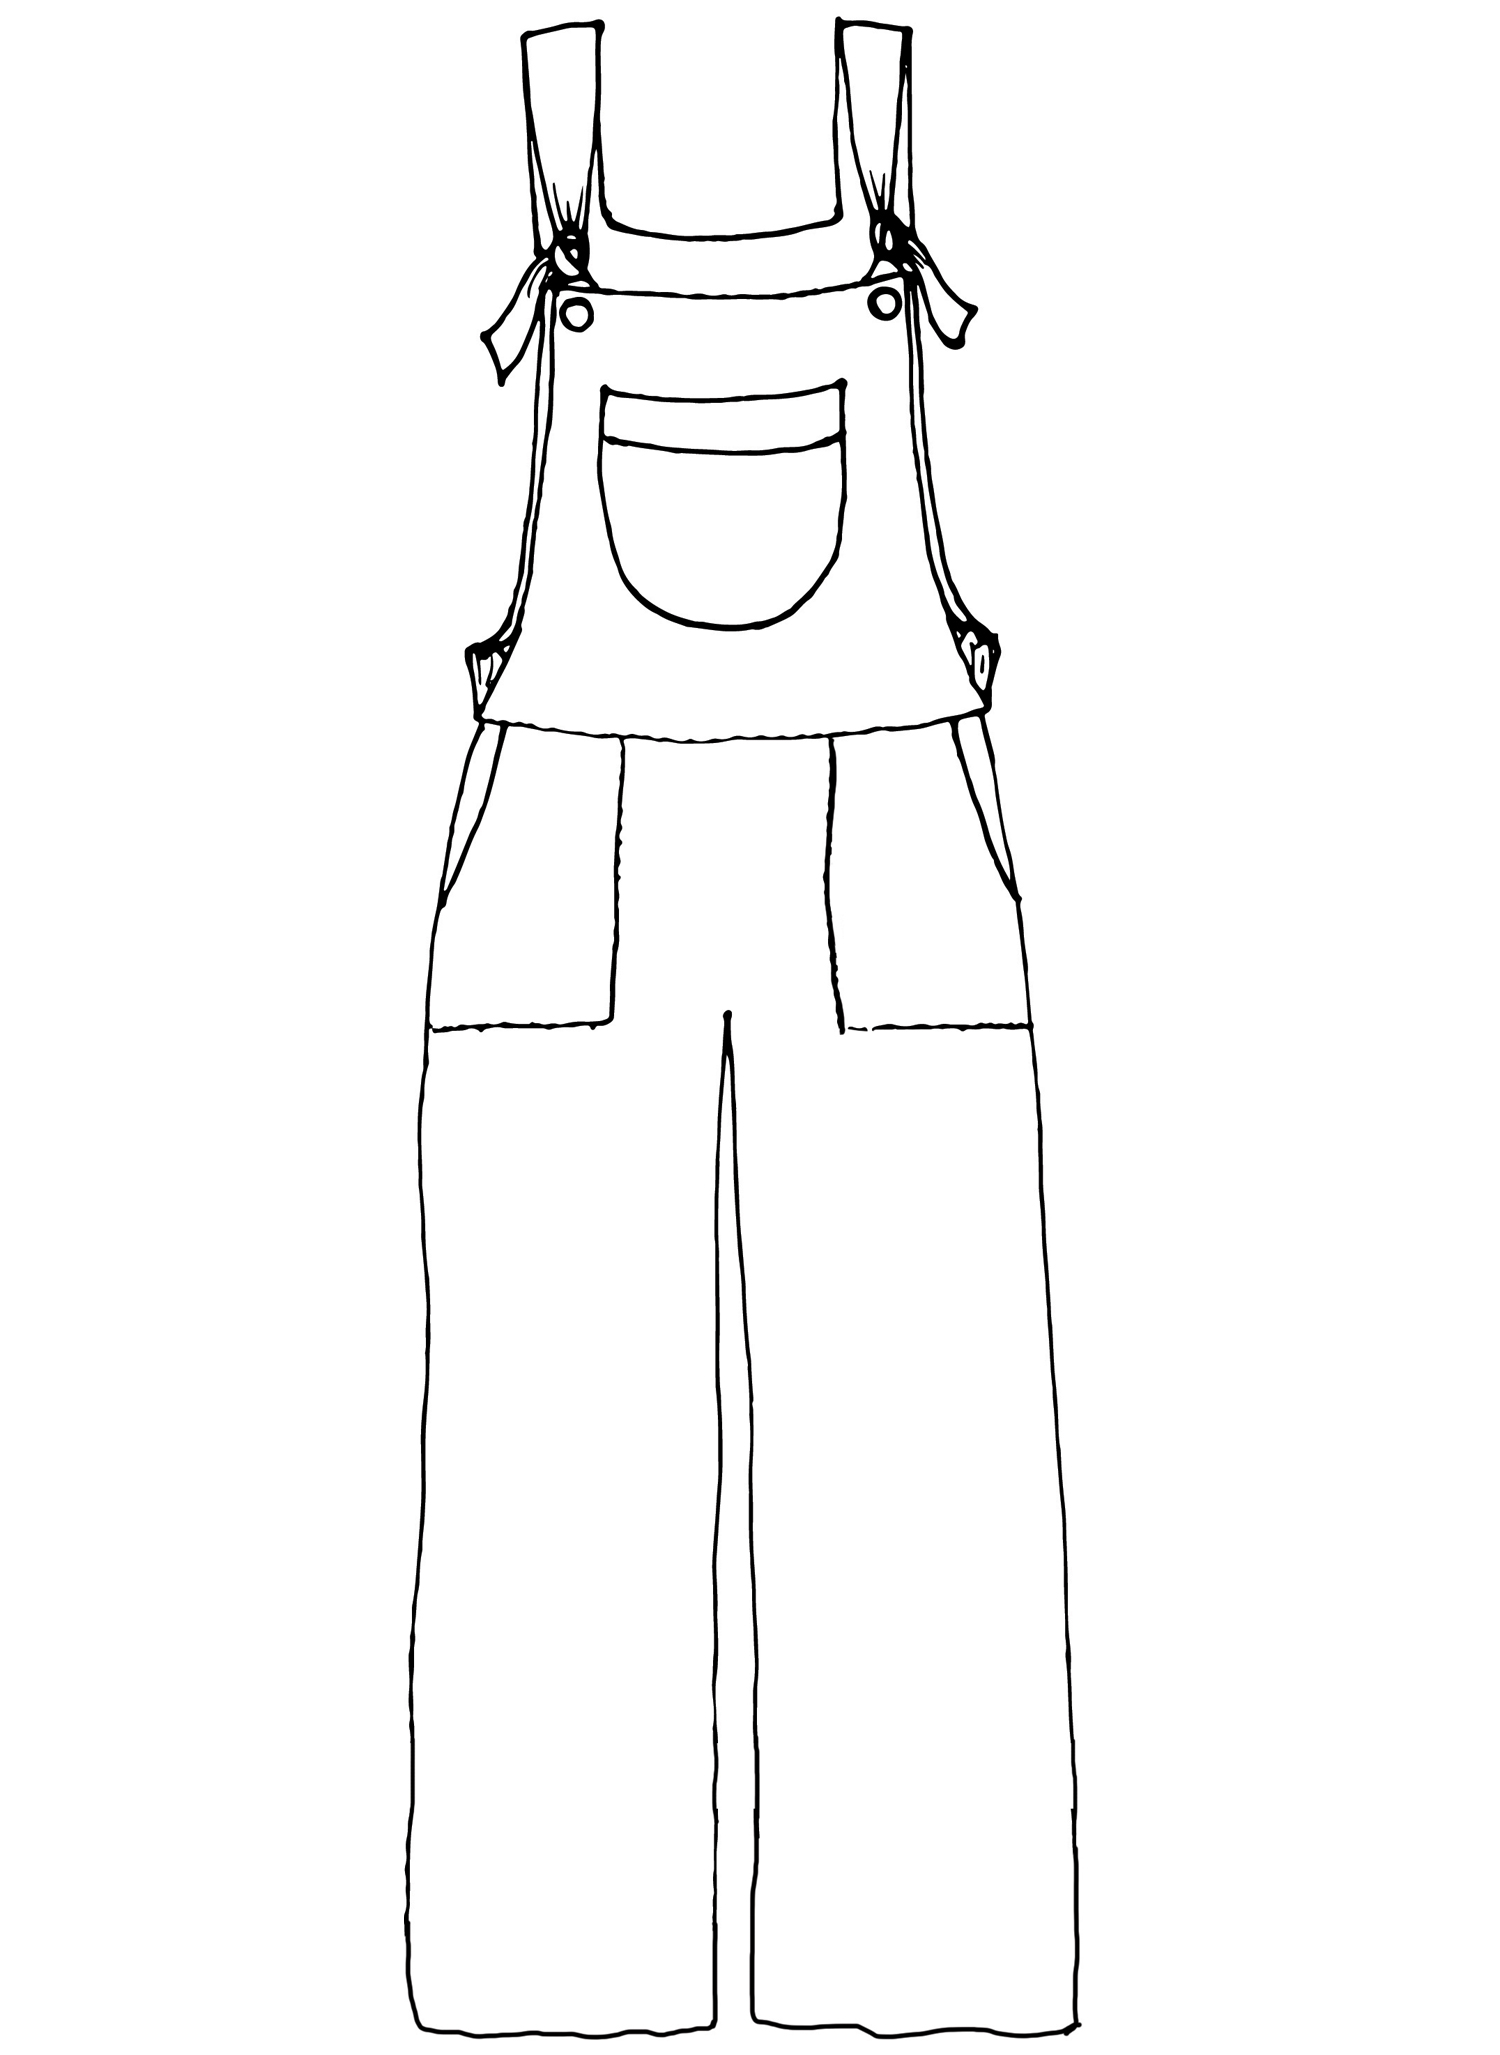 Overalls sketch image